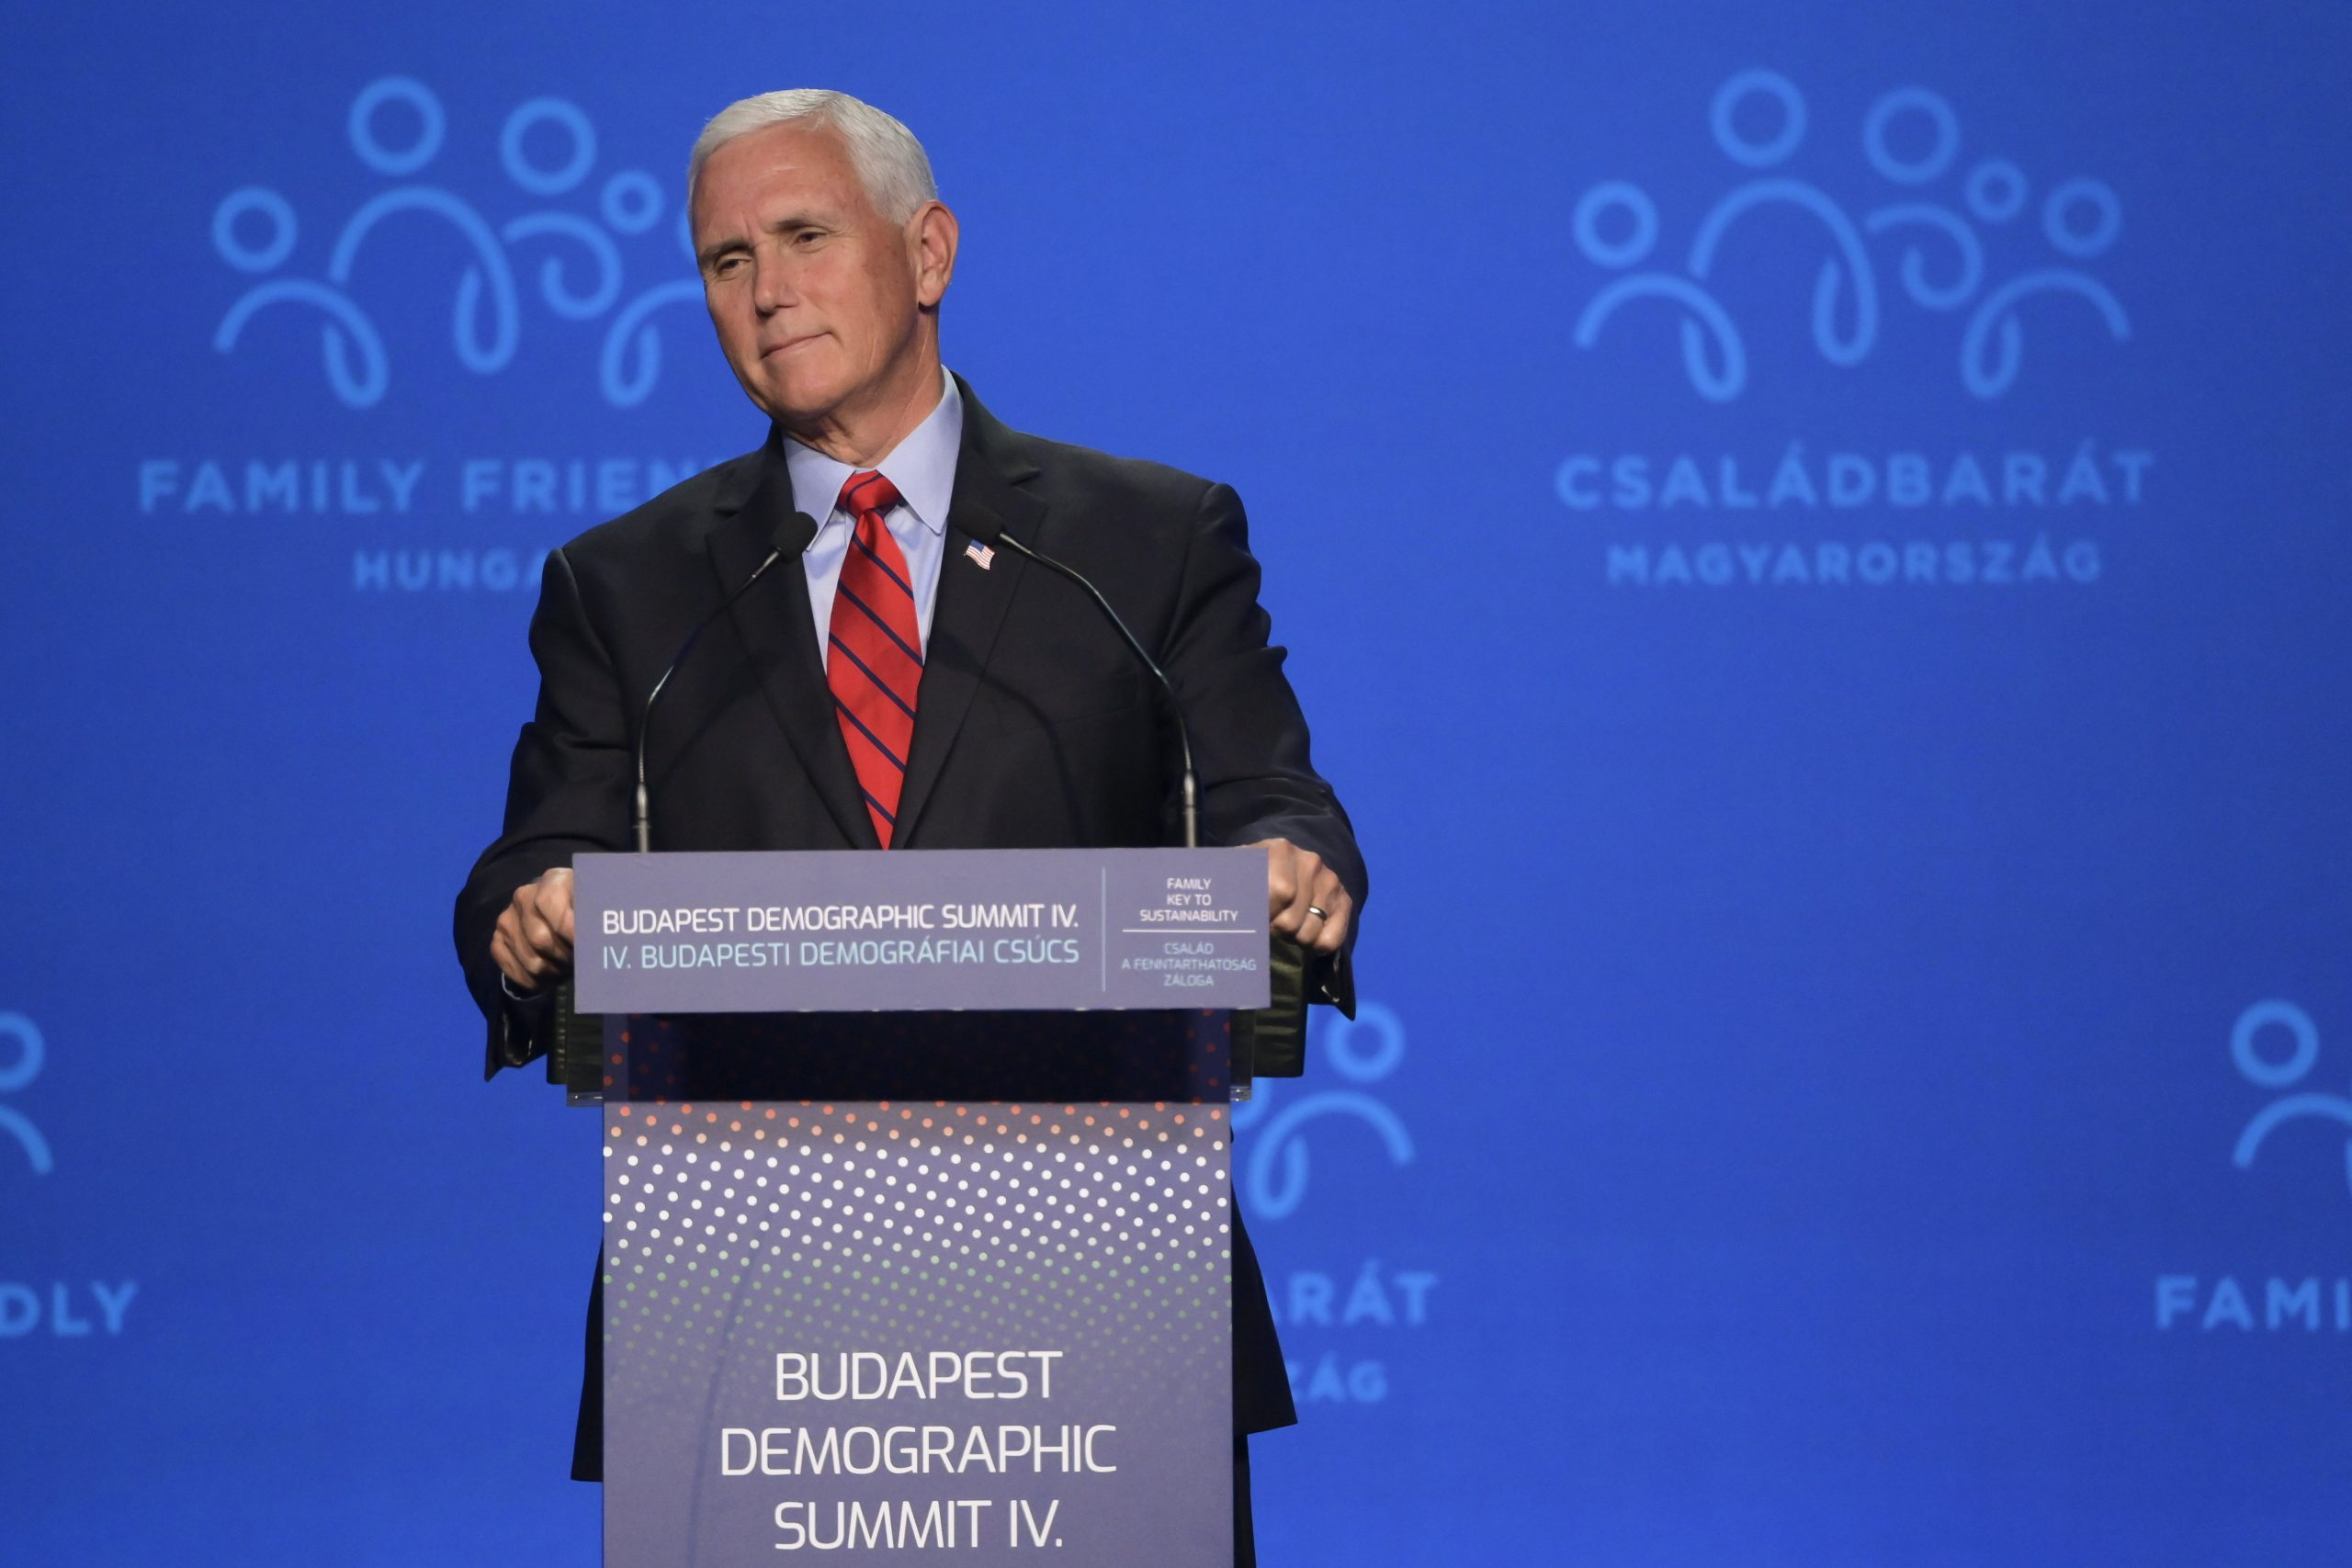 Former US Vice President Pence Praises Hungary Govt's Vision on Family Policy